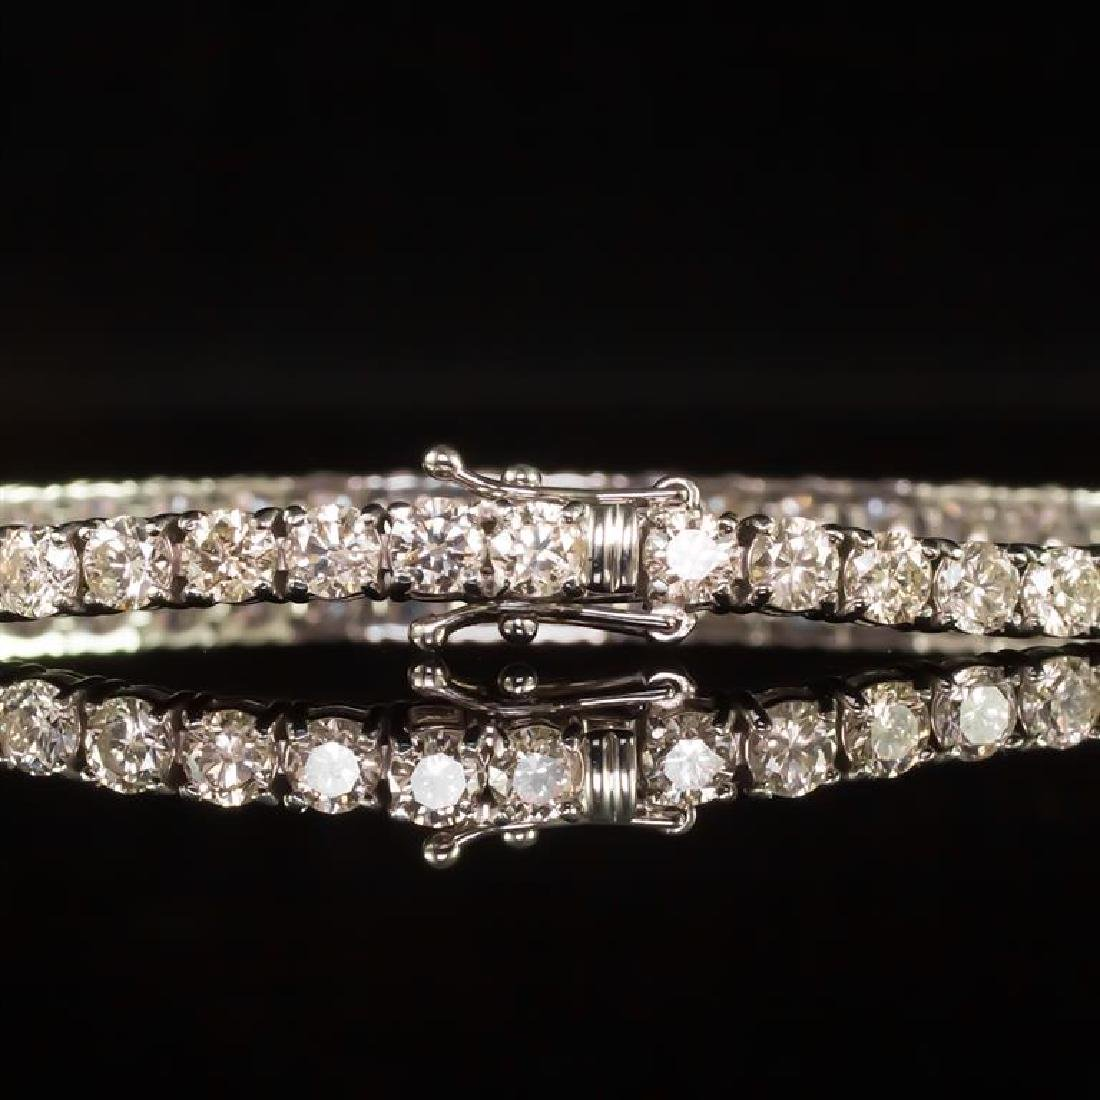 18K Gold 9.02ct Diamond Bracelet - 3